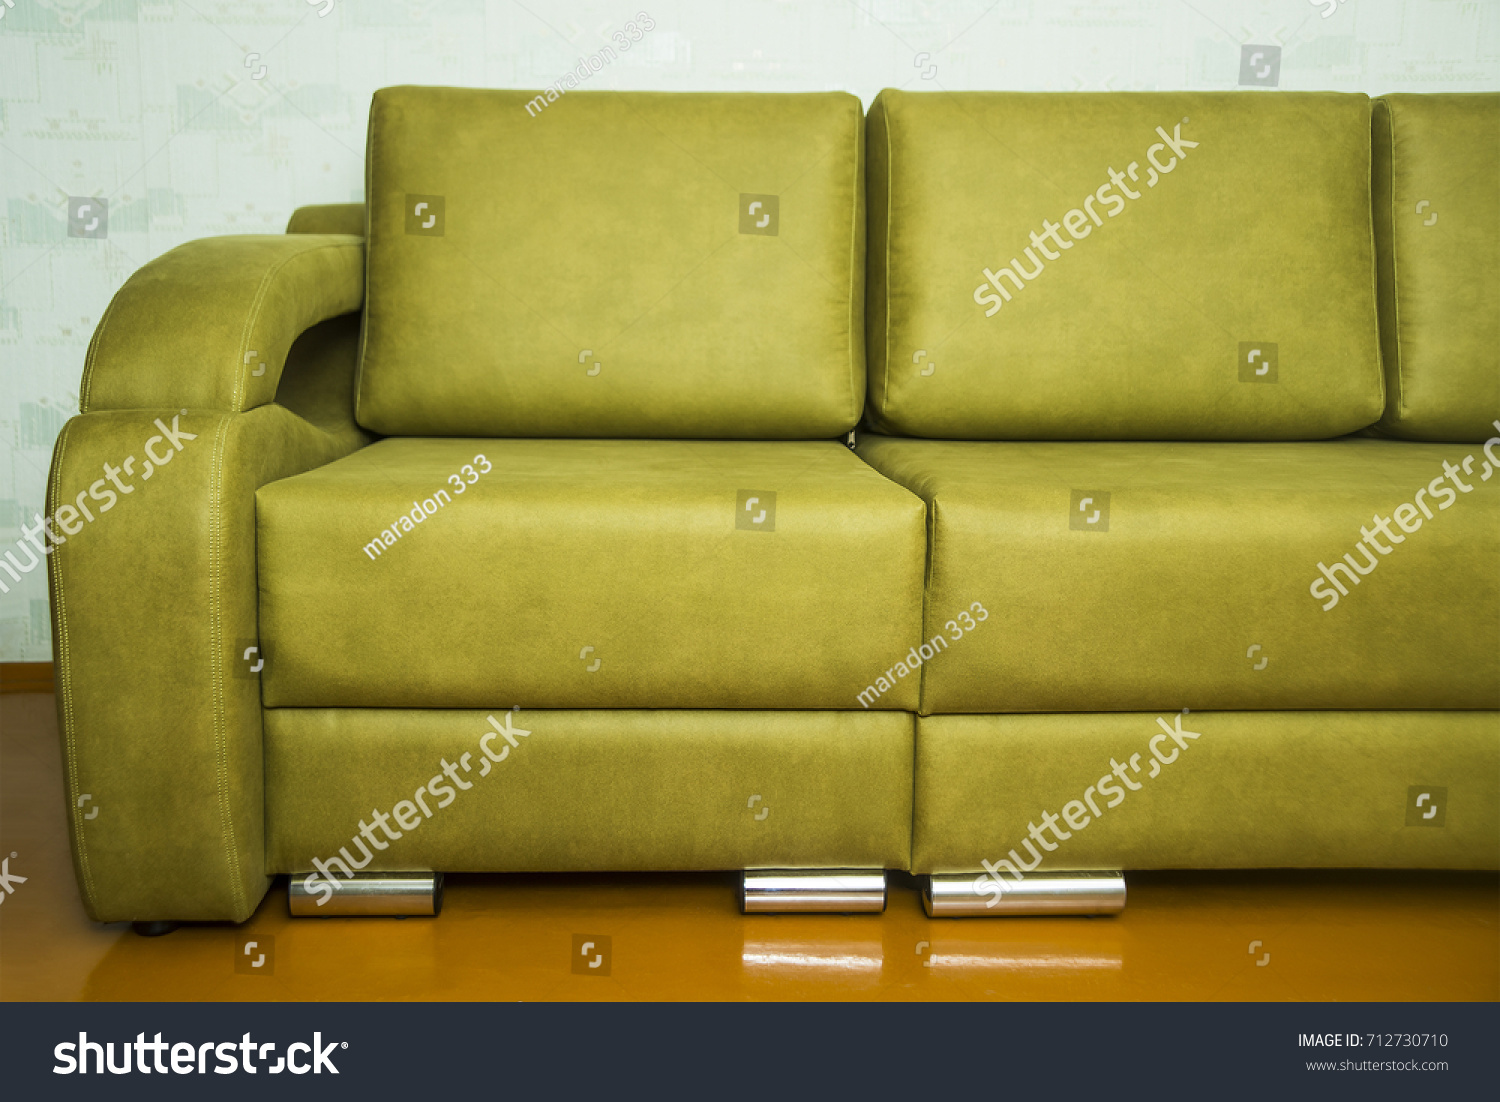 Interior Green Olive Color Coach Empty Stock Photo (Royalty Free ...